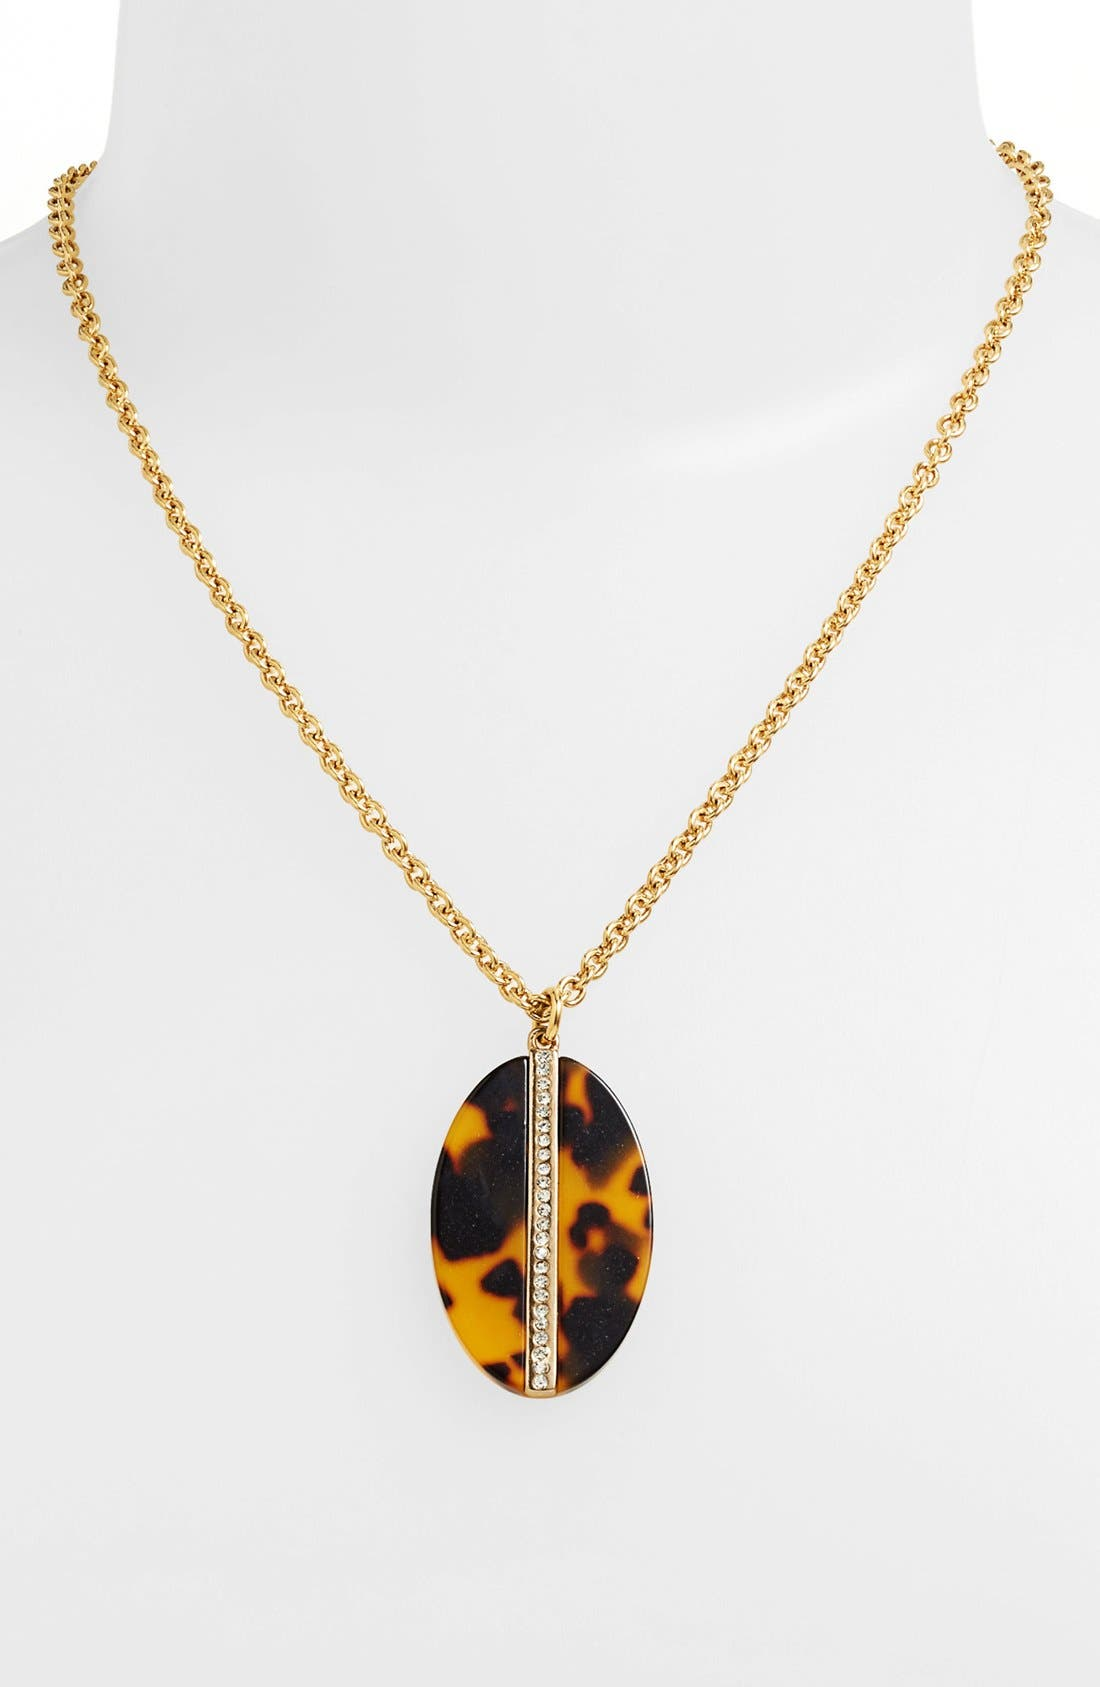 Main Image - Lauren Ralph Lauren Oval Pendant Necklace